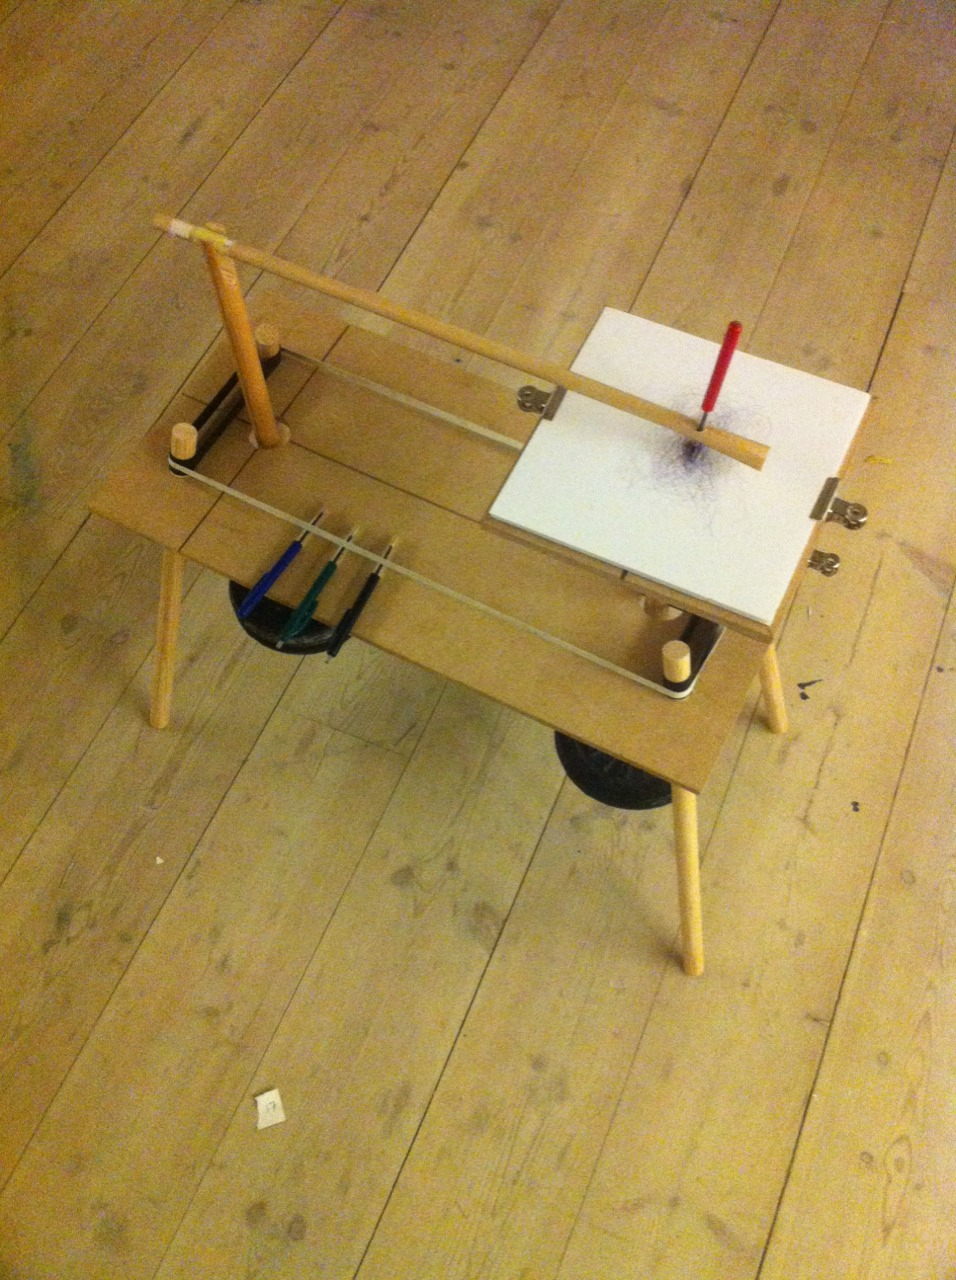 September '13 / KADK / Copenhagen / Device #2     A homemade Harmonograph, made for site specific mapping of movements.